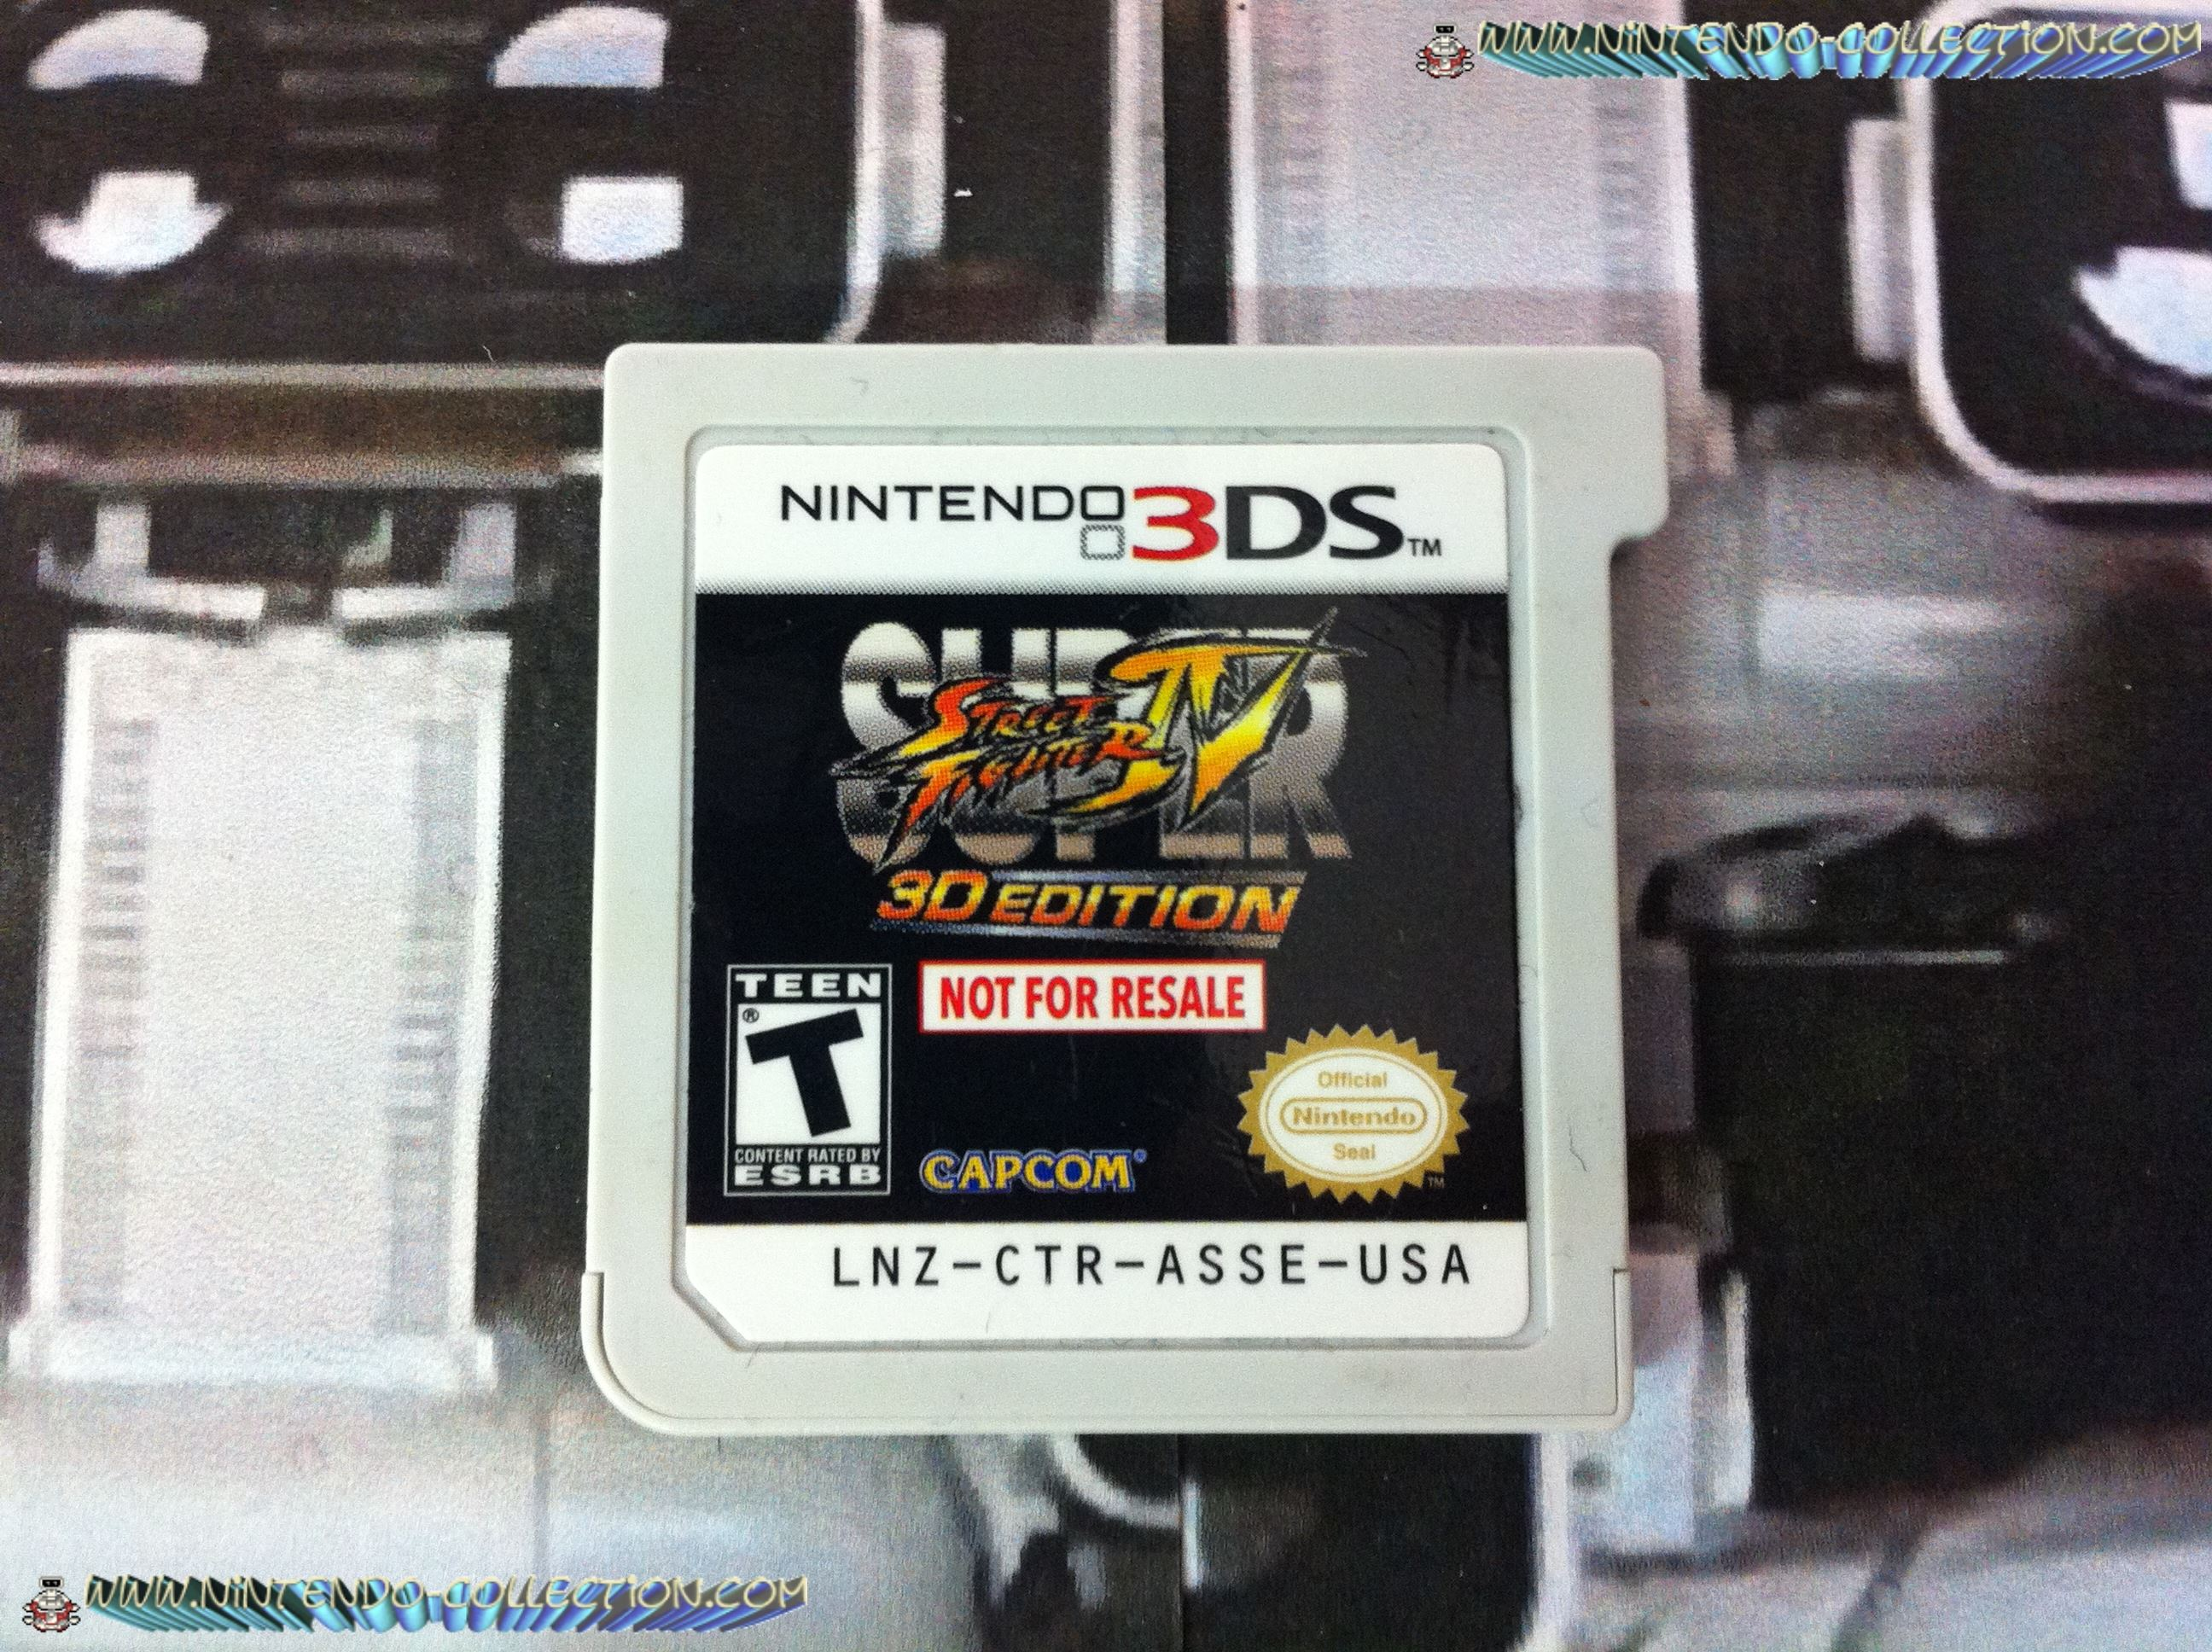 www.Nintendo-Collection.com - Demo 3DS Nintendo Super Street Fighter IV 3D edition Not For Resale